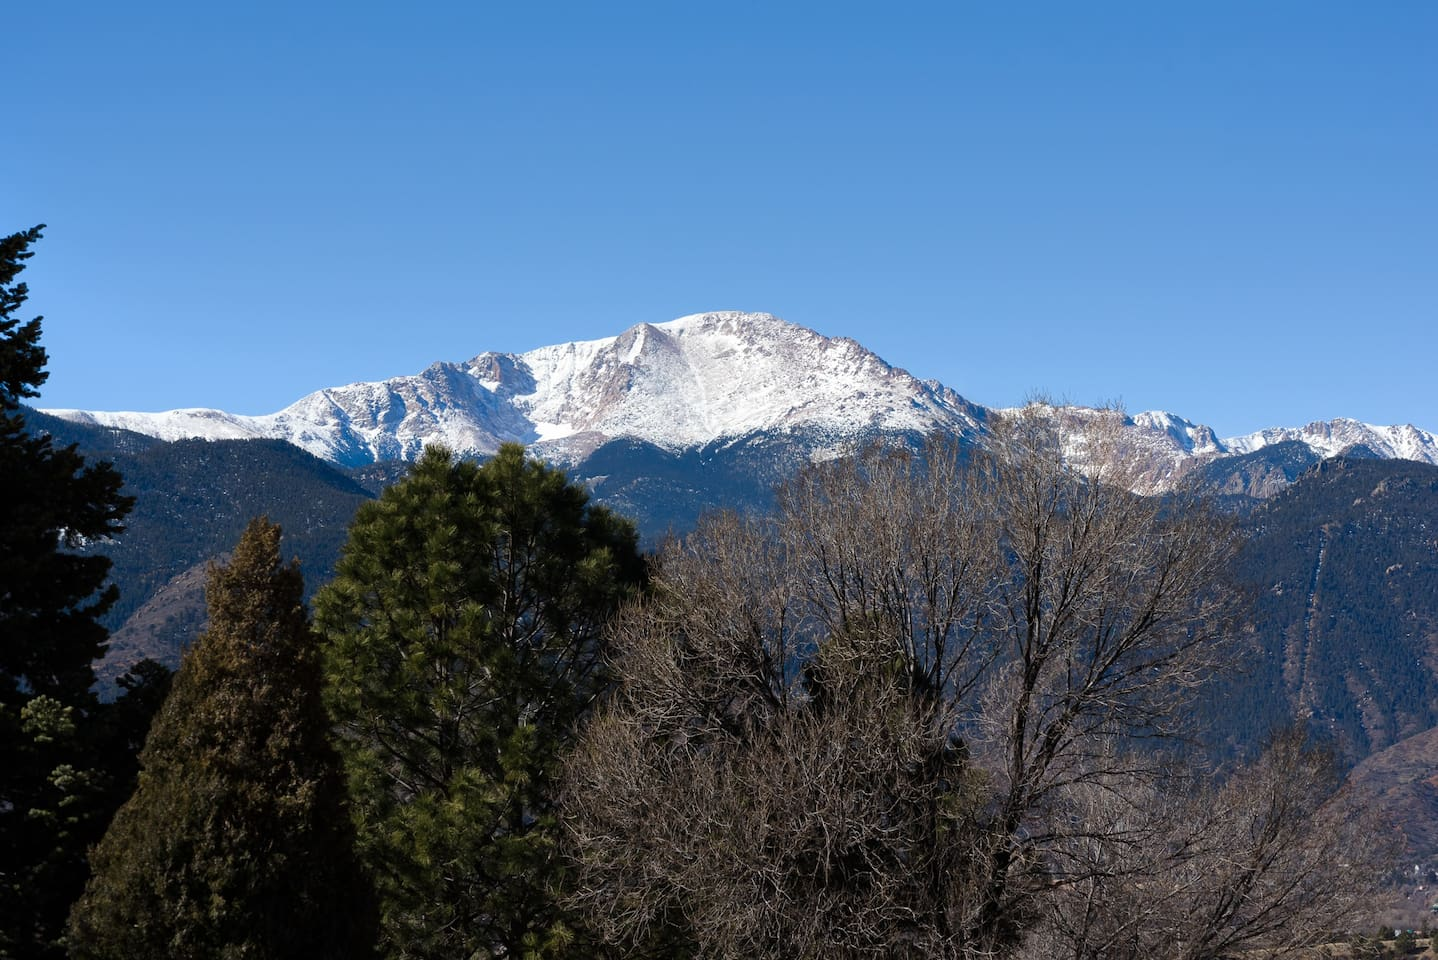 Enjoy a little slice of paradise with a view of Pike's Peak.  This is what you see from the entry deck and living room of Peakview Little Luxury house. Can't beat the view.